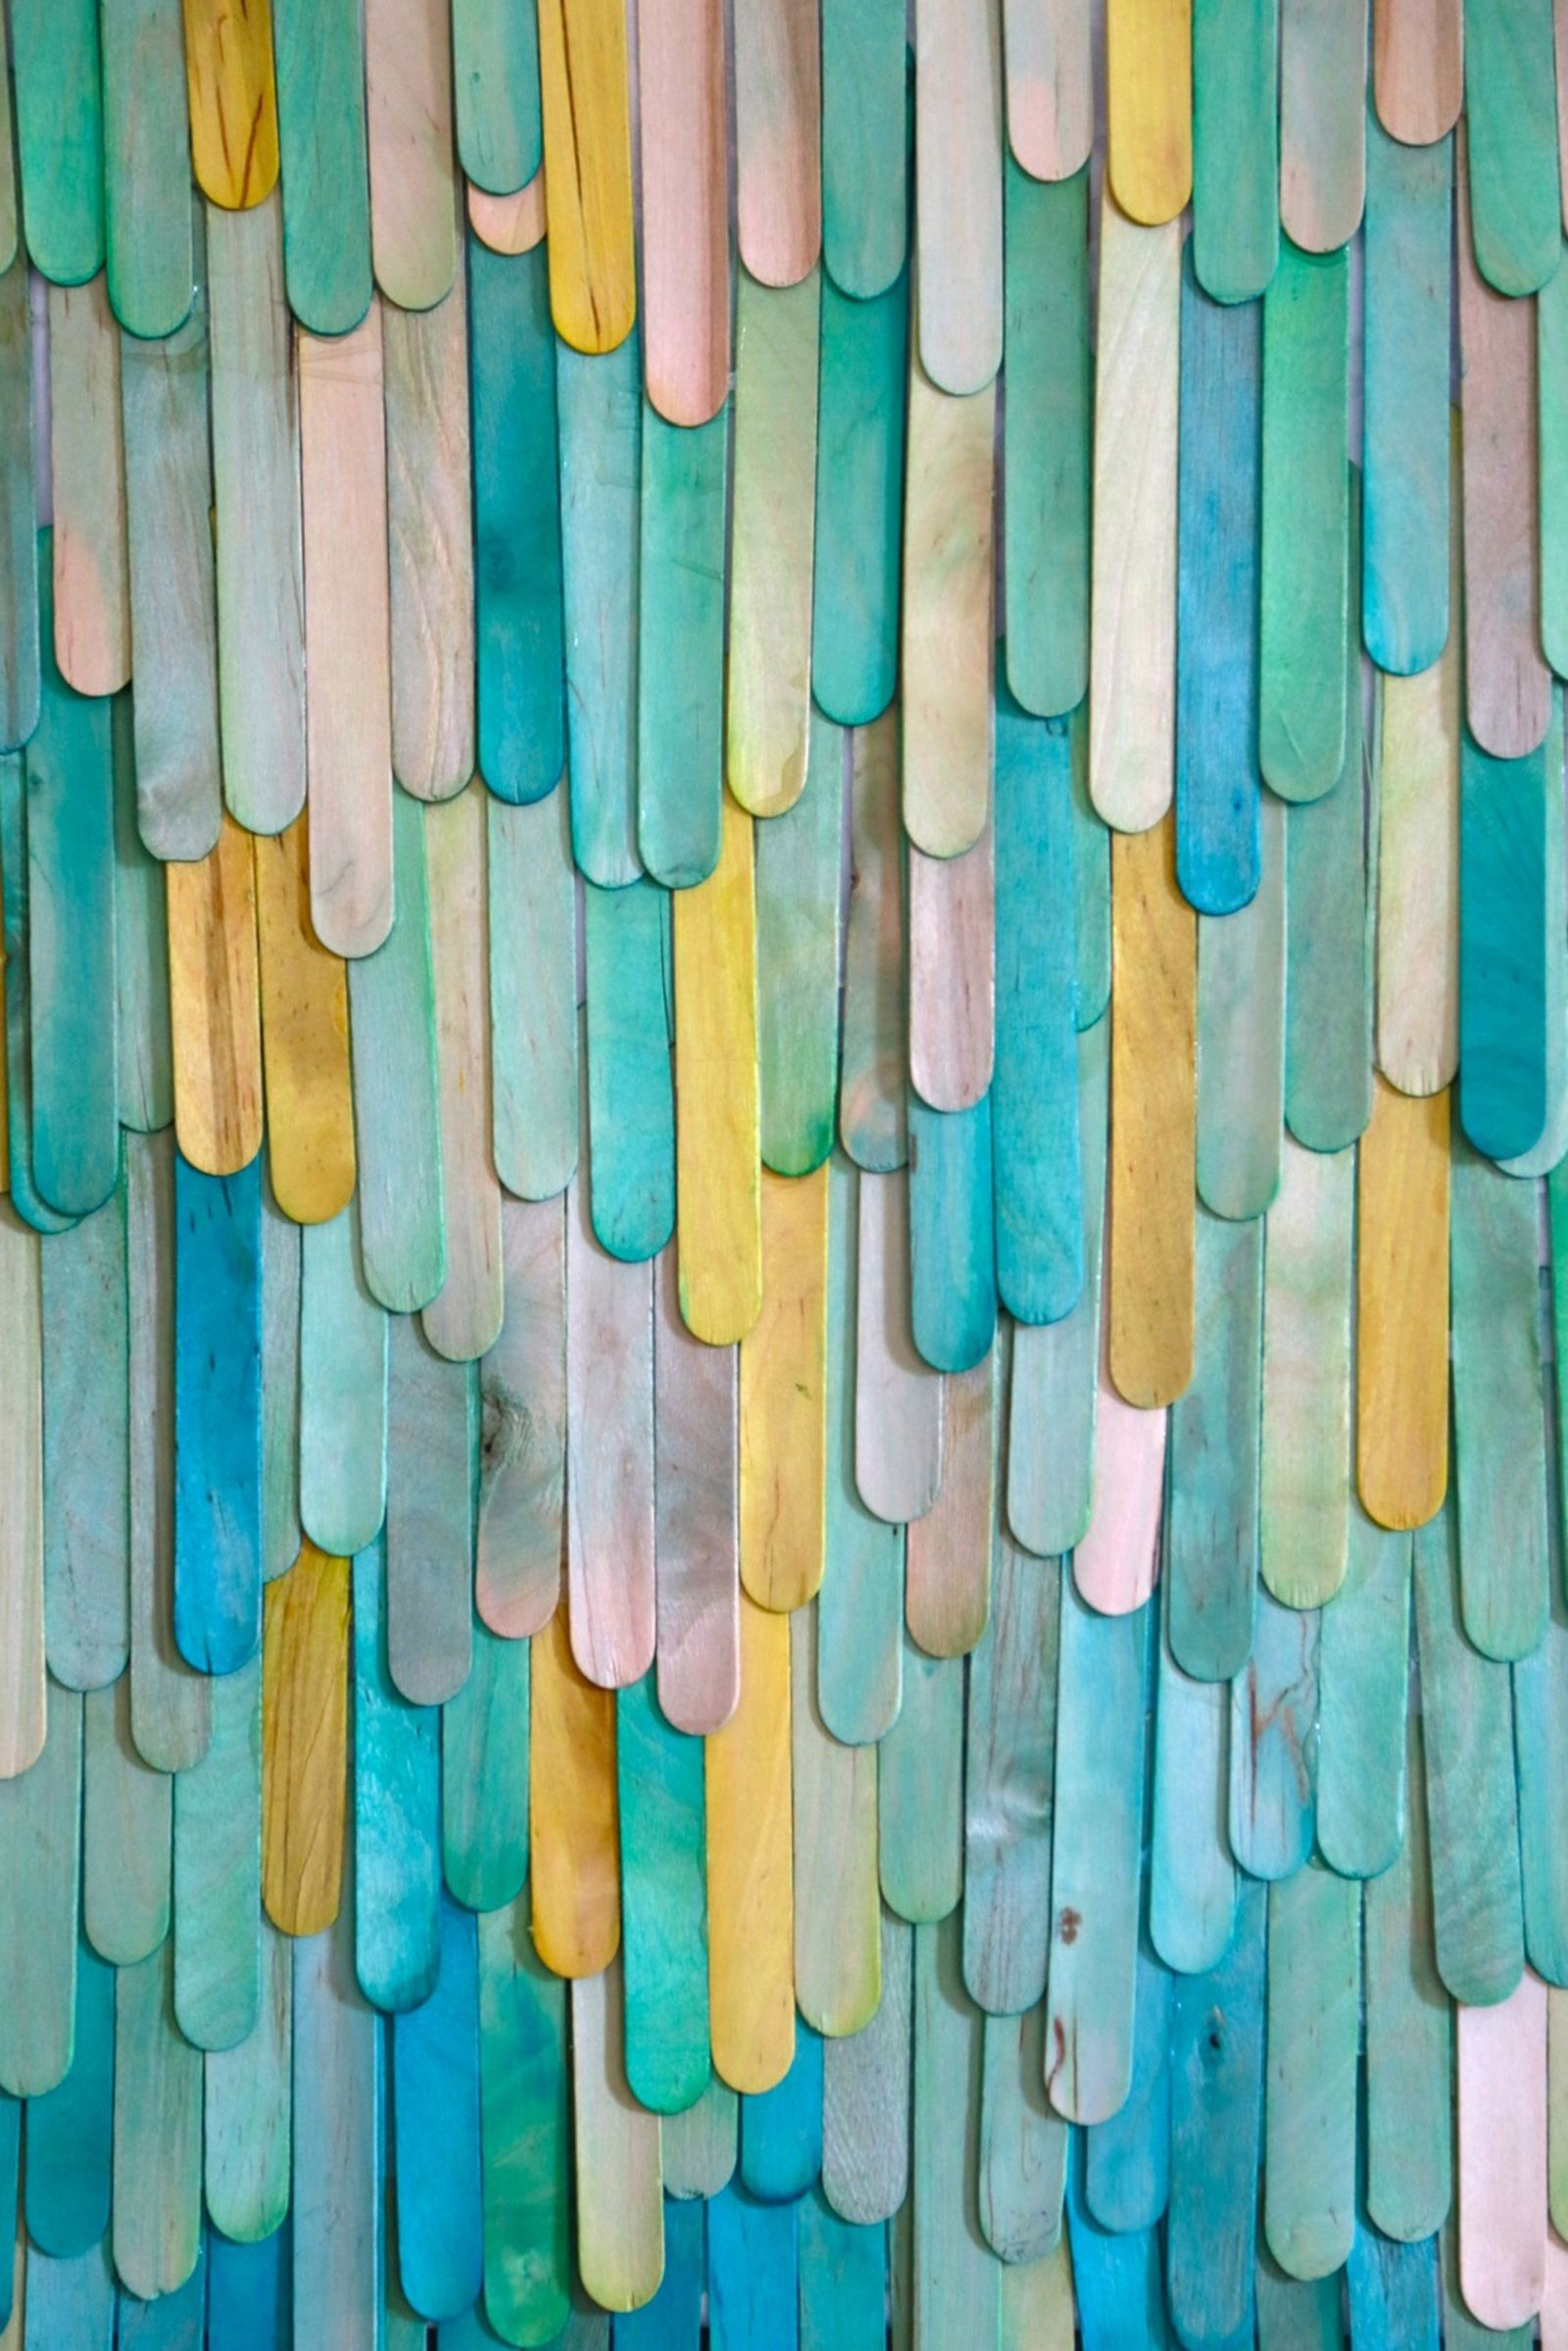 Easy popsicle stick art ilovetocreate with images